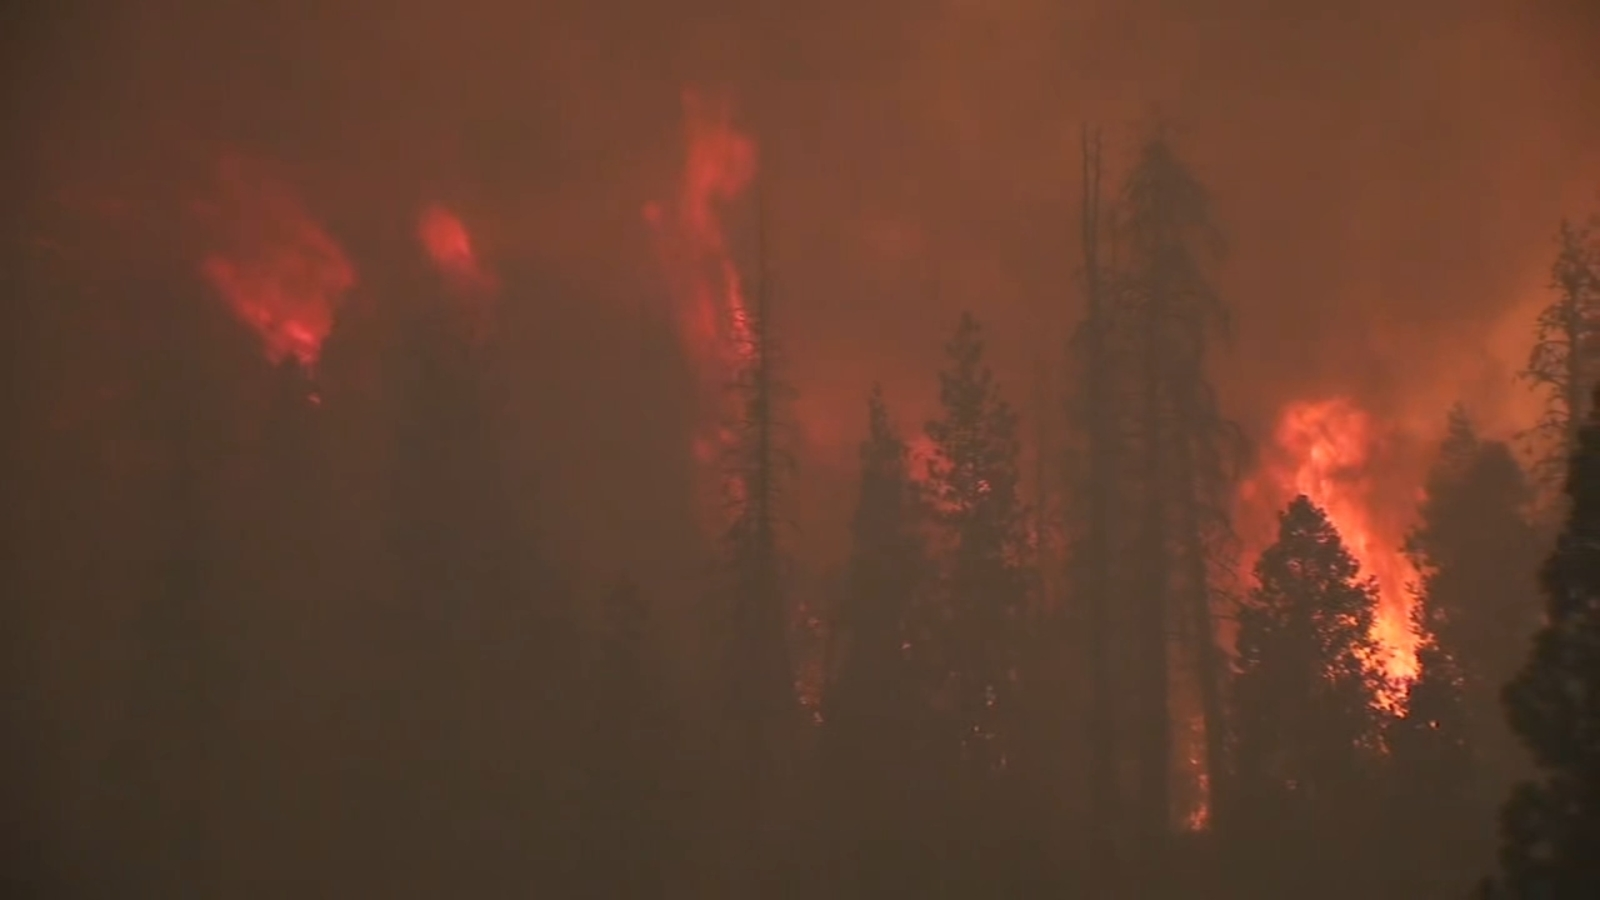 6422075 091420 kfsn 5a creek fire vid jpg?w=1600